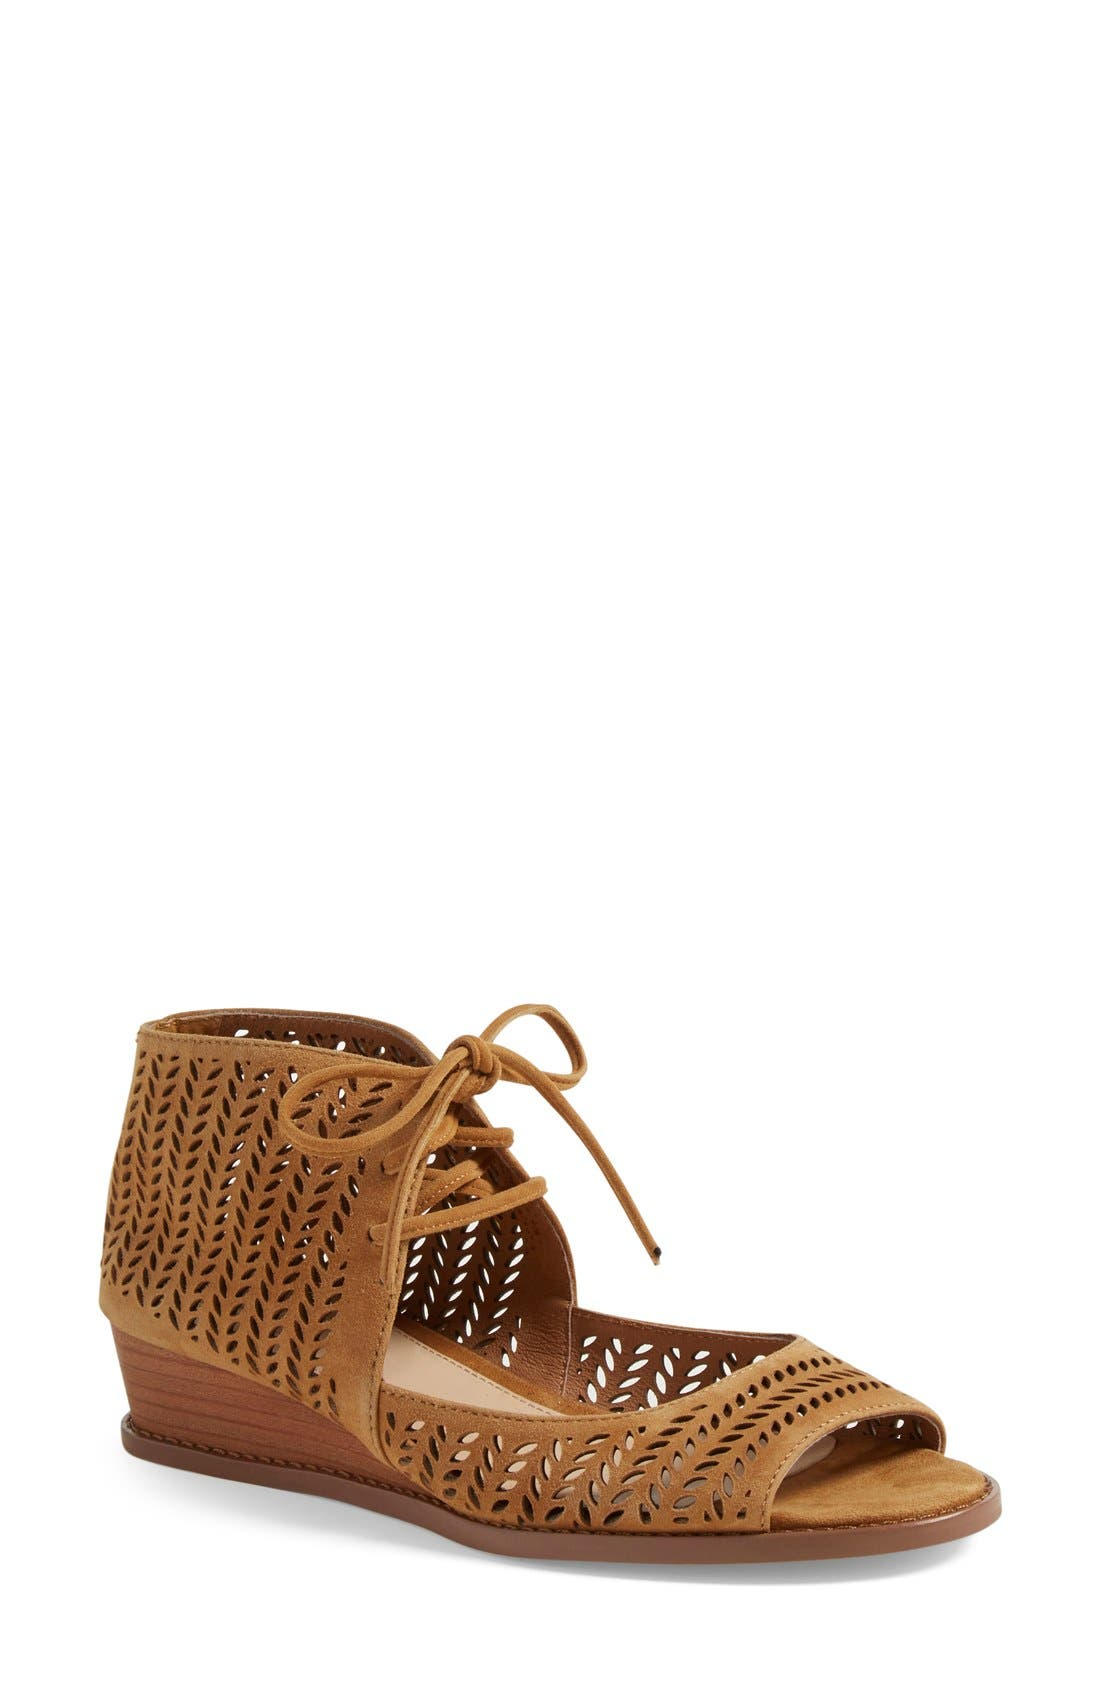 Main Image - Vince Camuto 'Remme' Cutout Lace-Up Wedge Sandal (Women) (Nordstrom Exclusive)